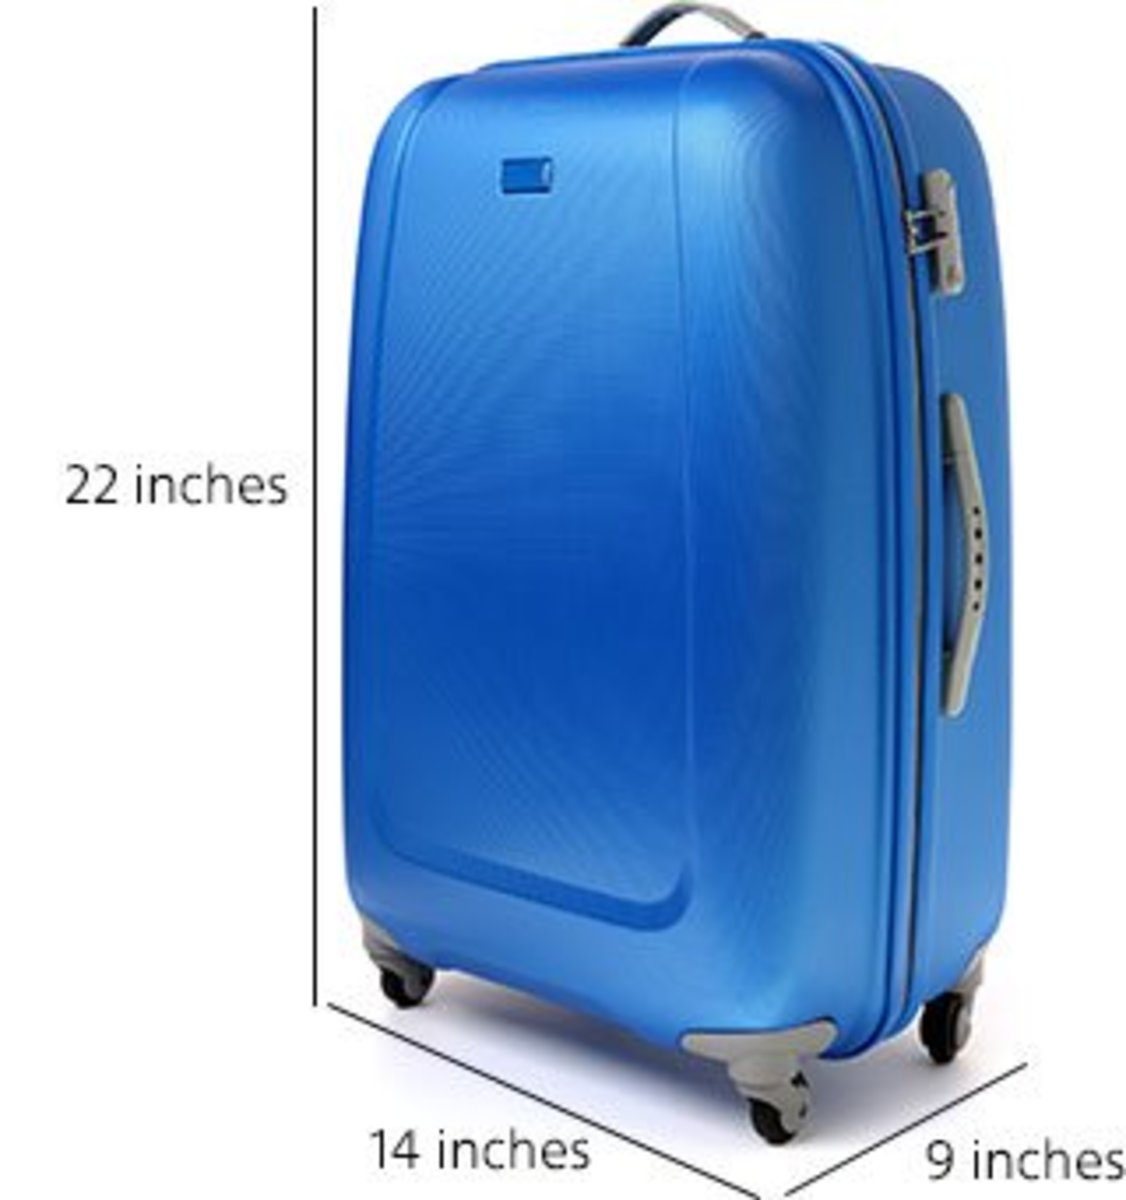 A standard-sized carry on bag will fit in the overhead bins just fine.